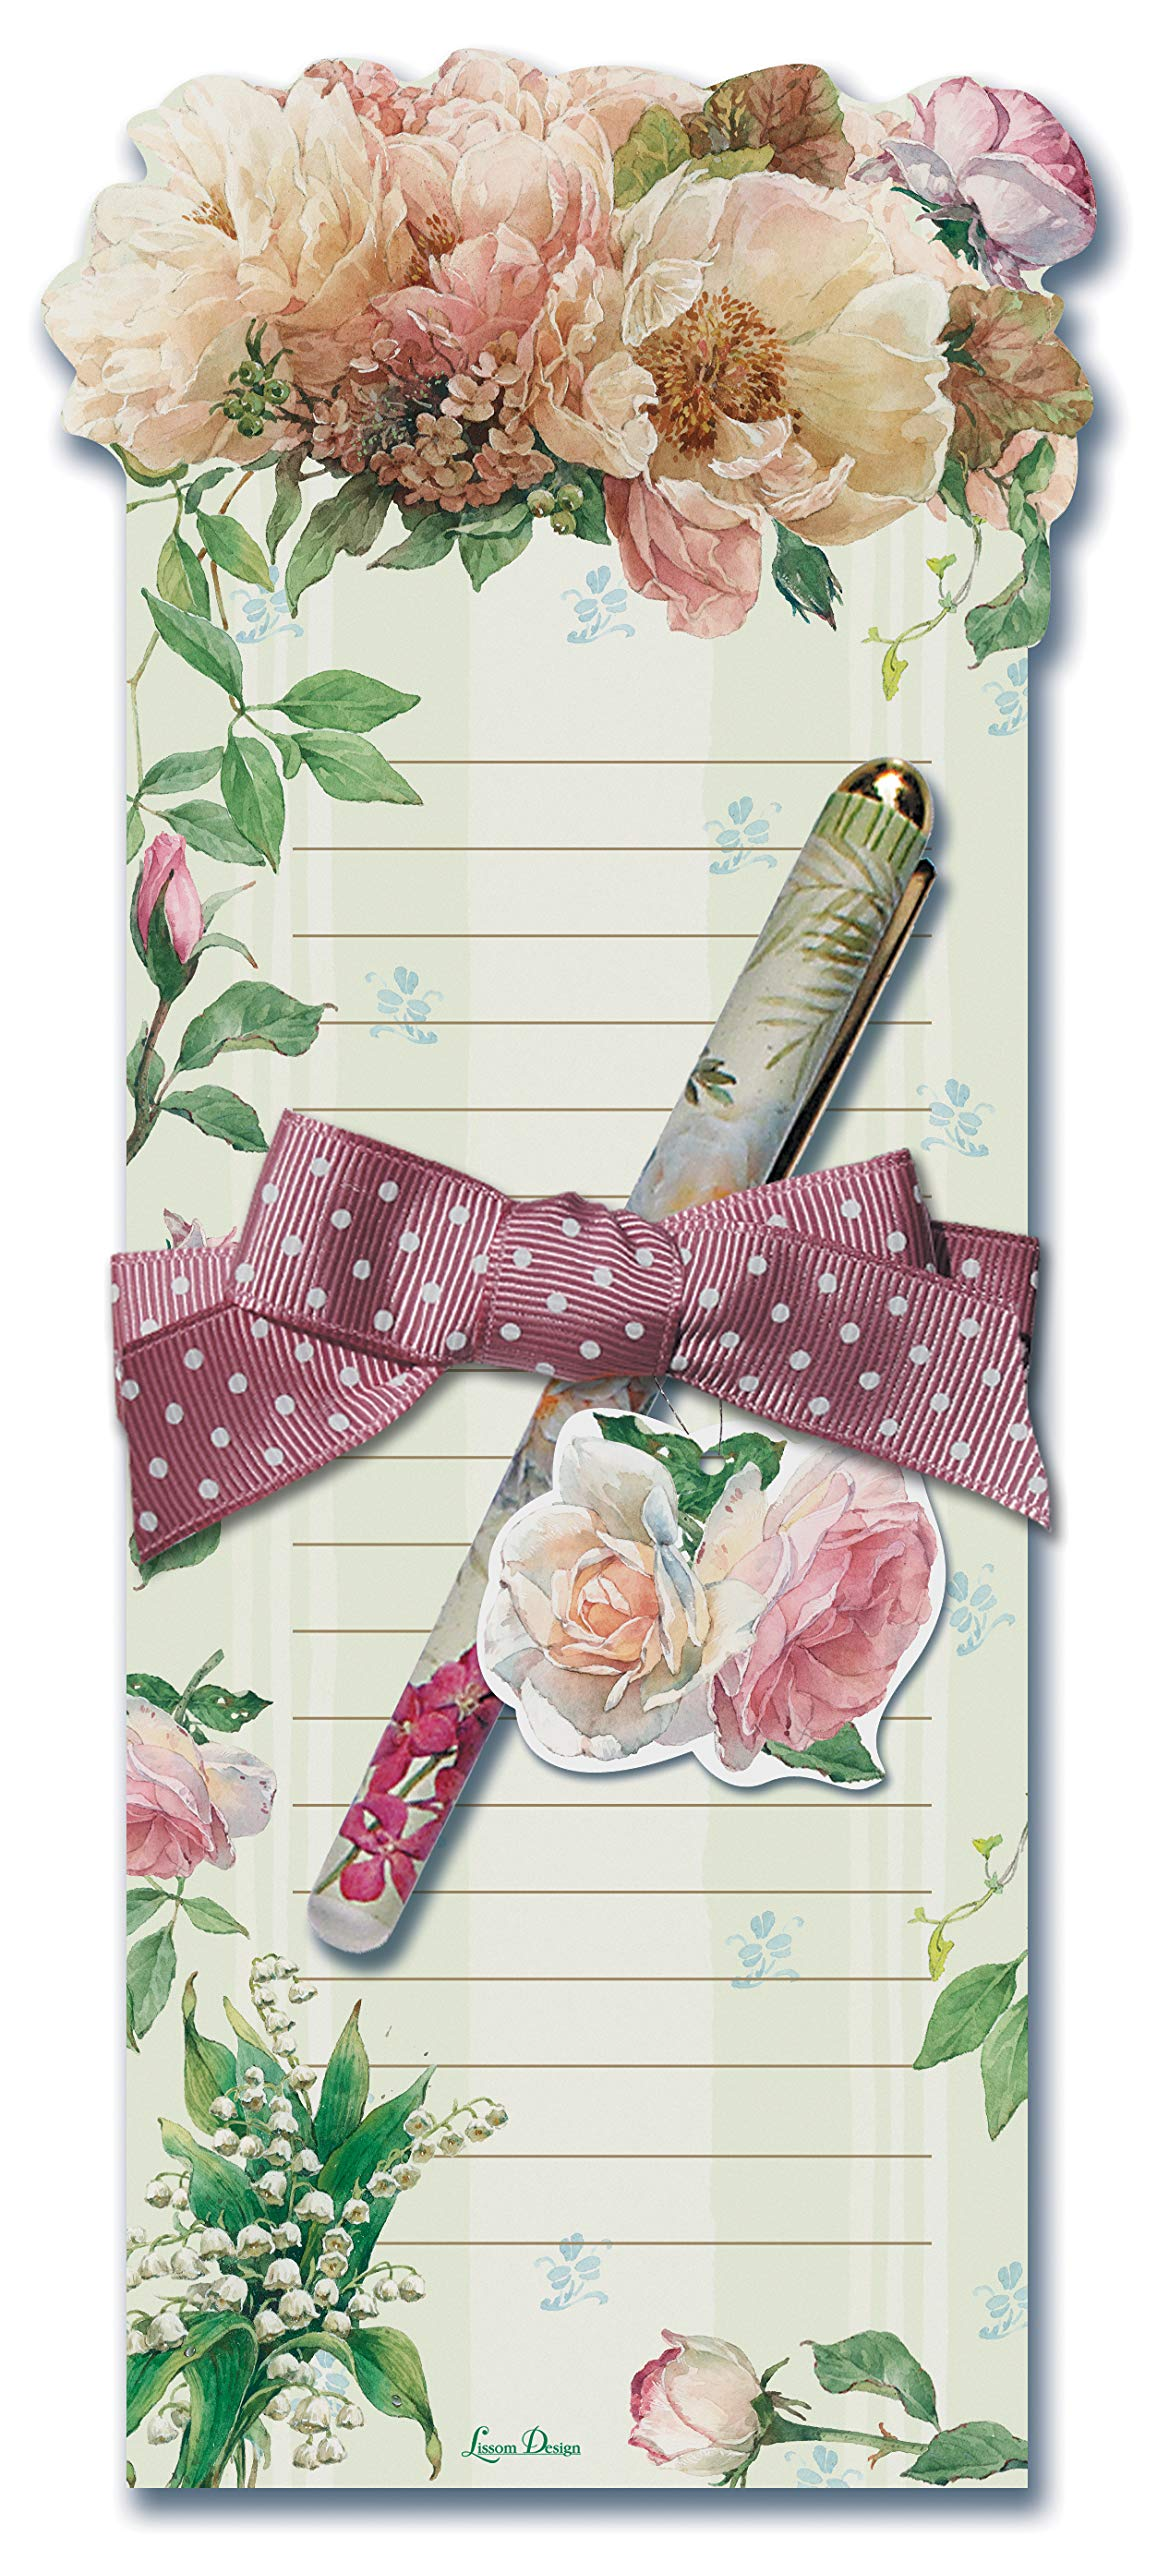 Lissom Design Die-Cut Magnetic List Pad, 8.75 x 3.75-Inches, Cottage in Bloom